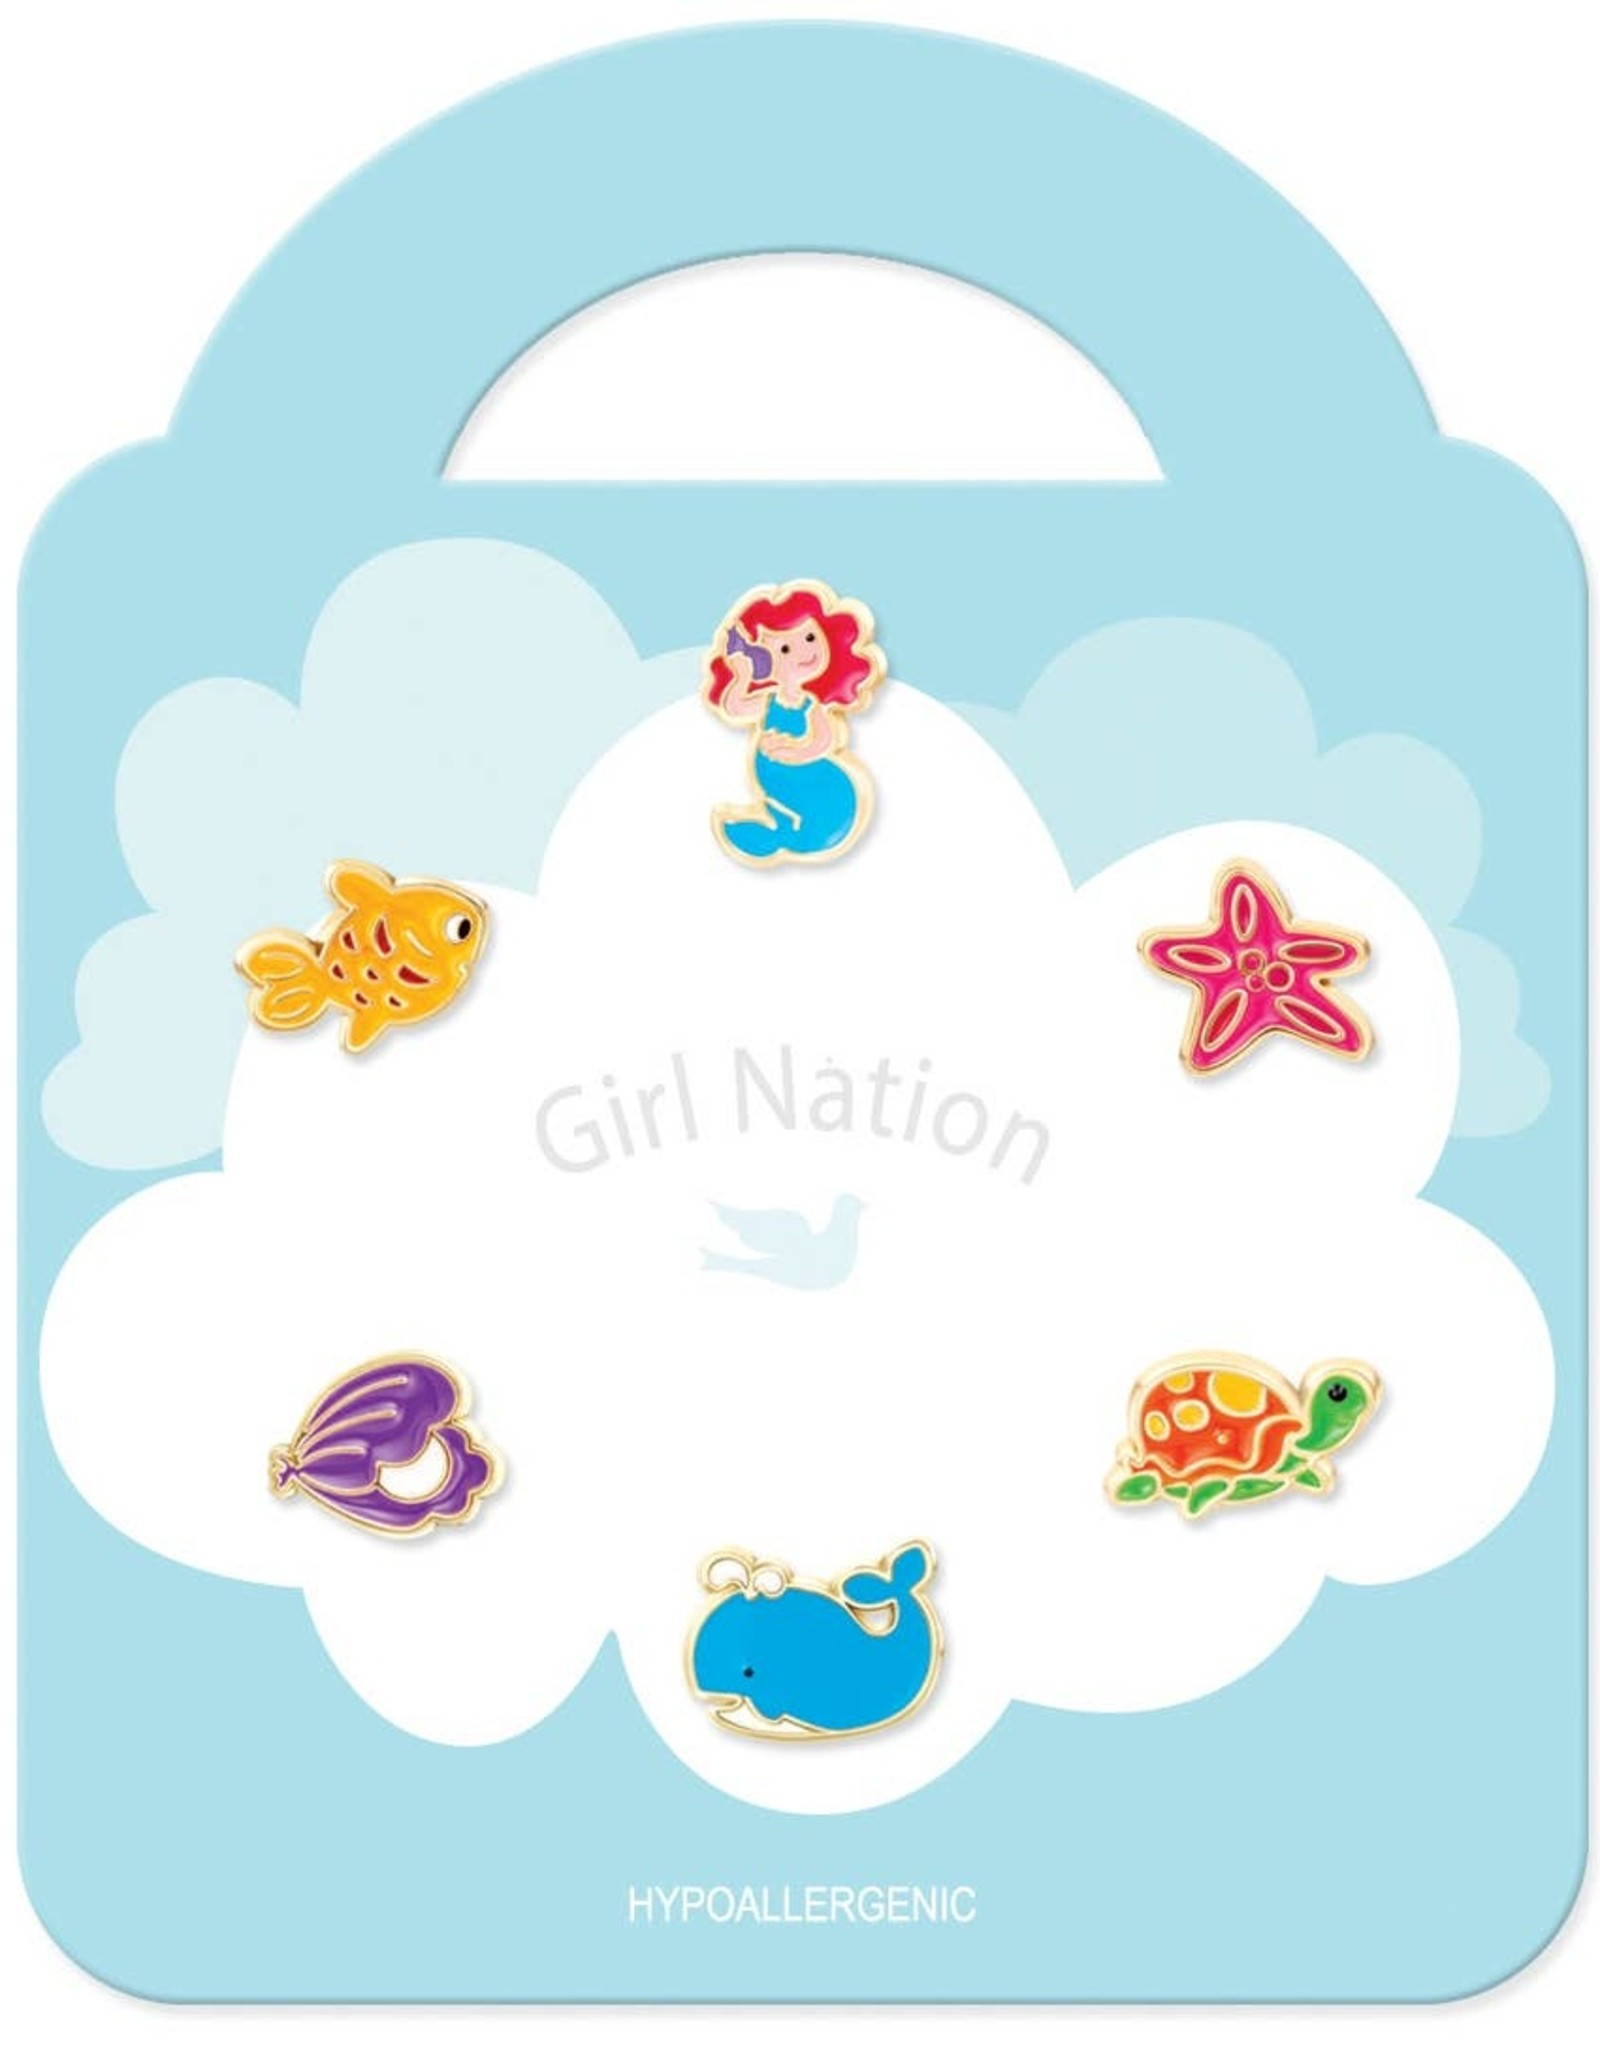 Girl Nation Mix it up - 6 mix and match enamel earrings - Mermaid